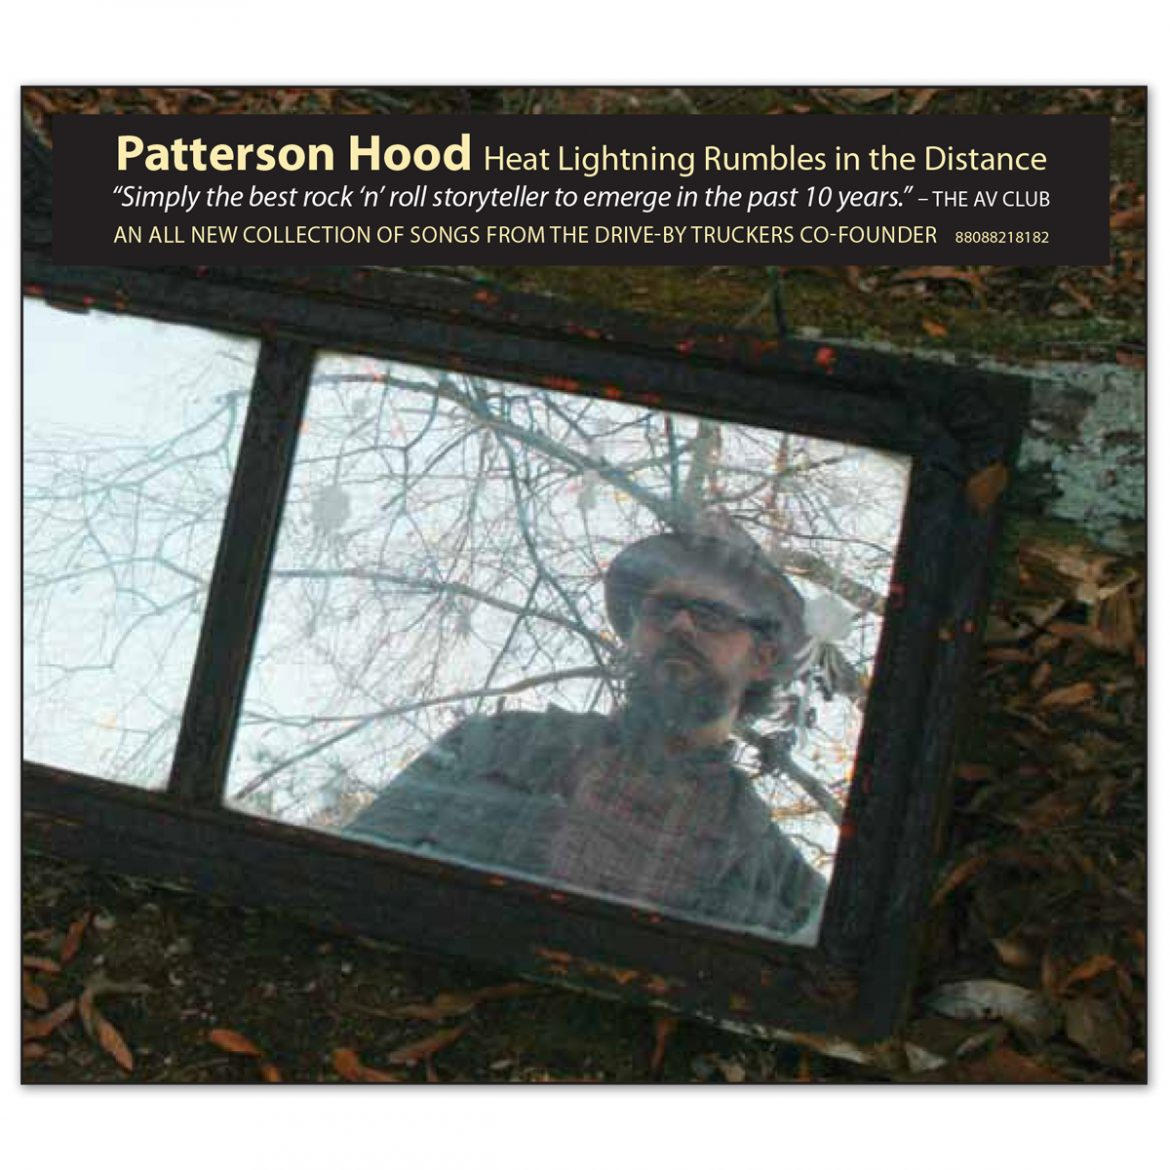 Patterson Hood de los Drive by Truckers tiene nuevo disco en solitario Heat Lightning Rumbles in the Distance 2012